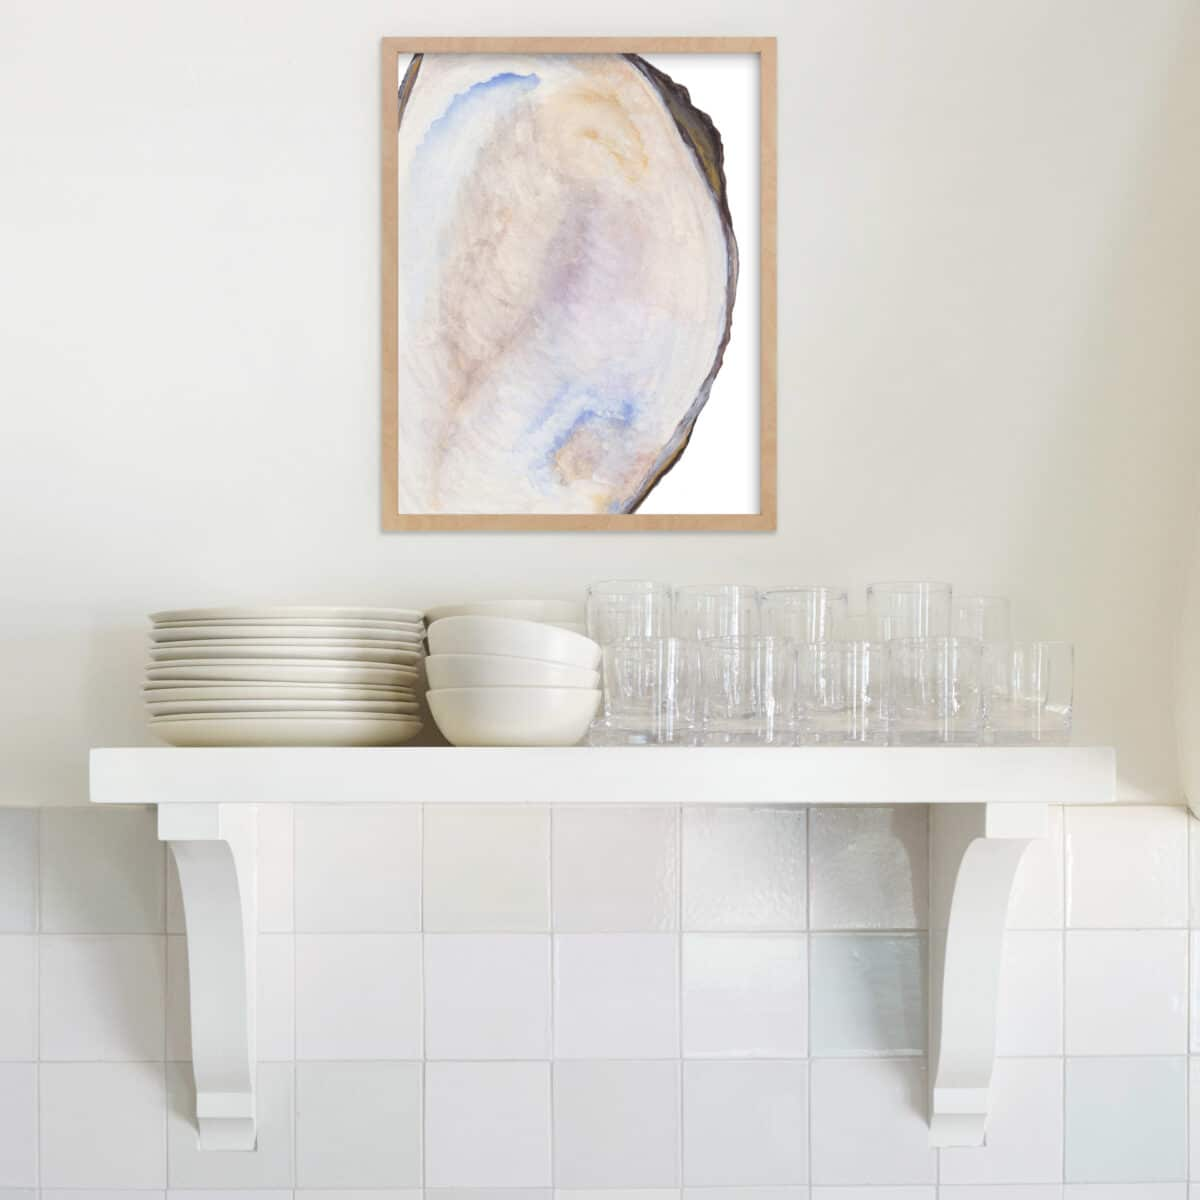 Oyster Art as part of the Coastal Home Decor Look